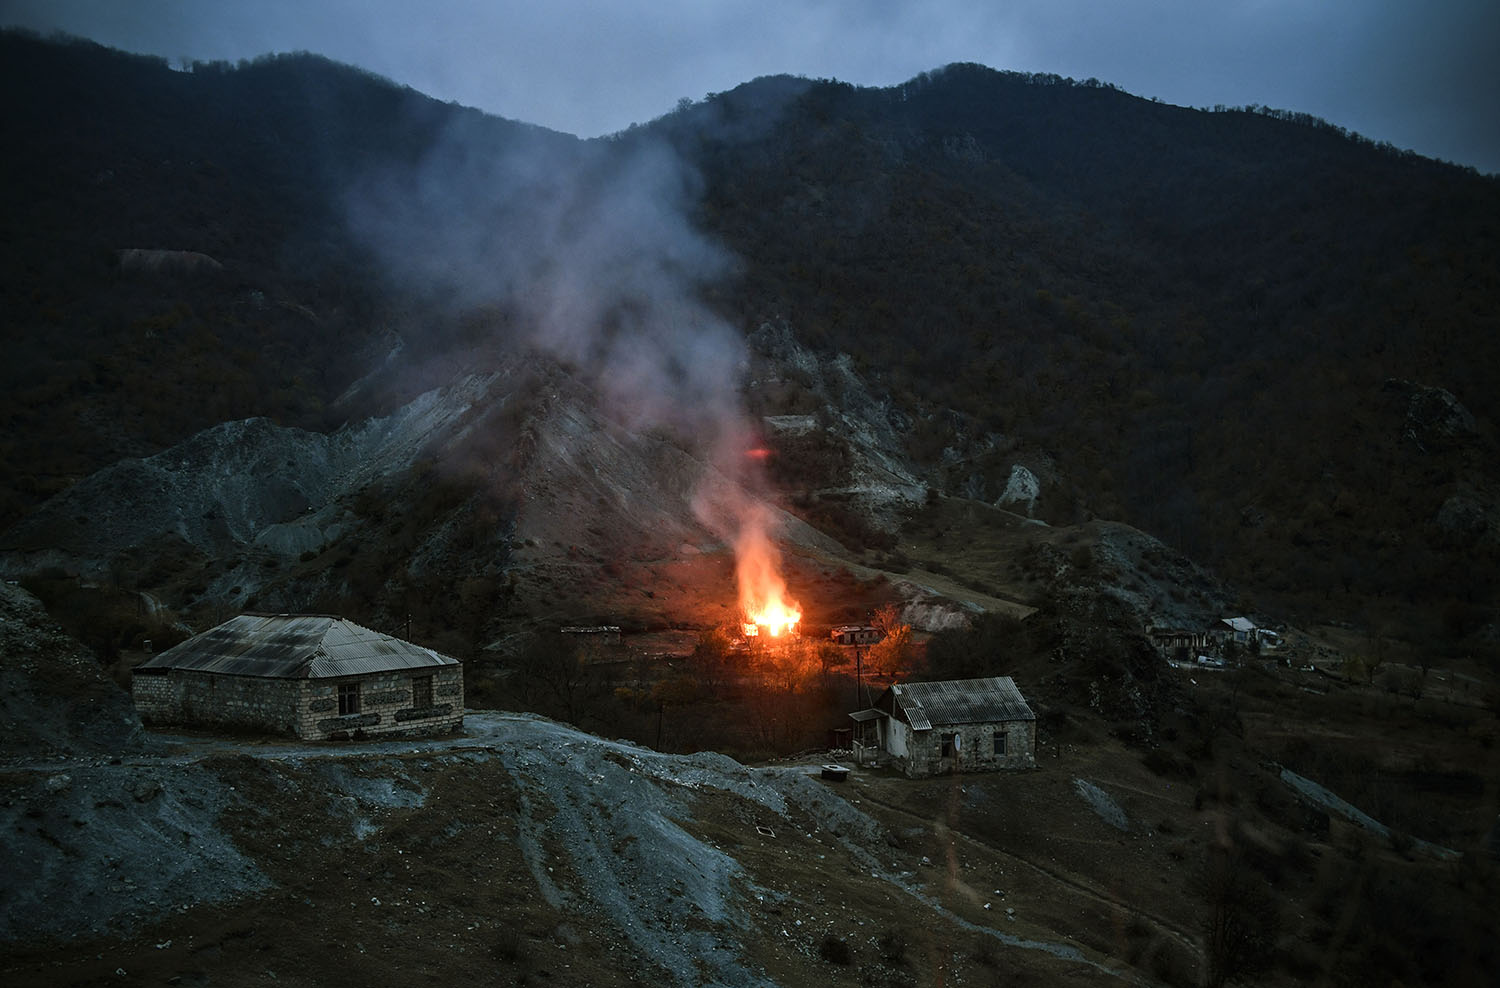 A house burns in a village outside the town of Kalbajar on Nov. 14.